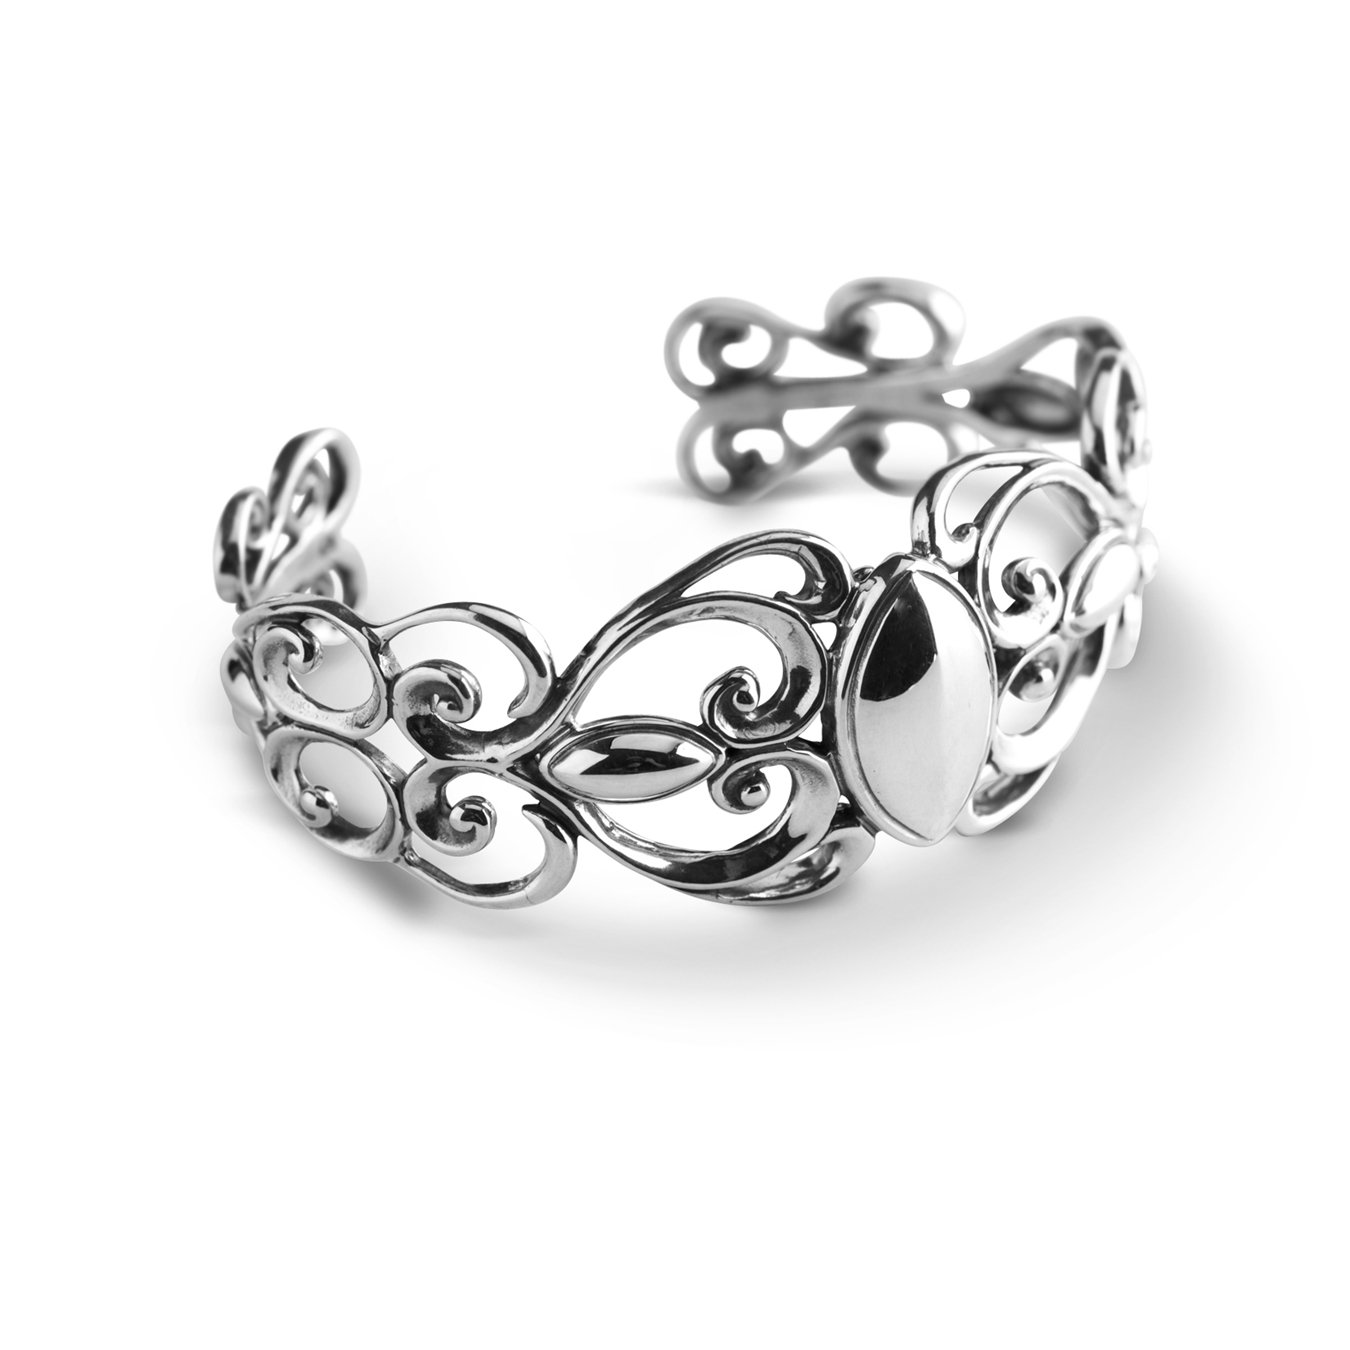 Carolyn Pollack Sterling Silver Scroll Cuff Bracelet, Small by Carolyn Pollack